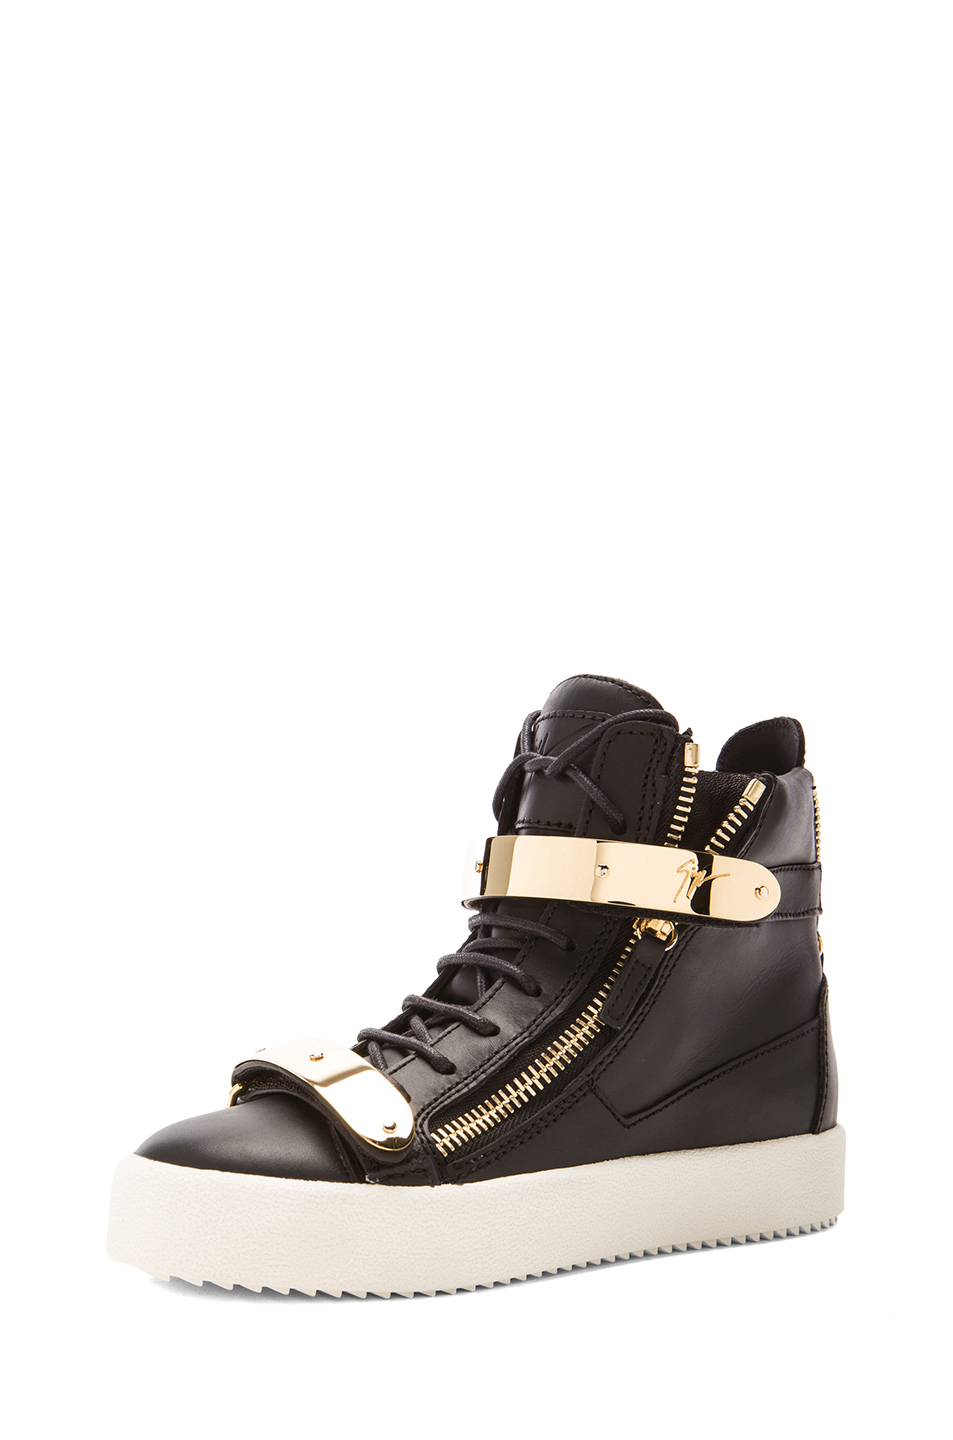 Giuseppe zanotti Leather Bucked Sneakers in Black | Lyst